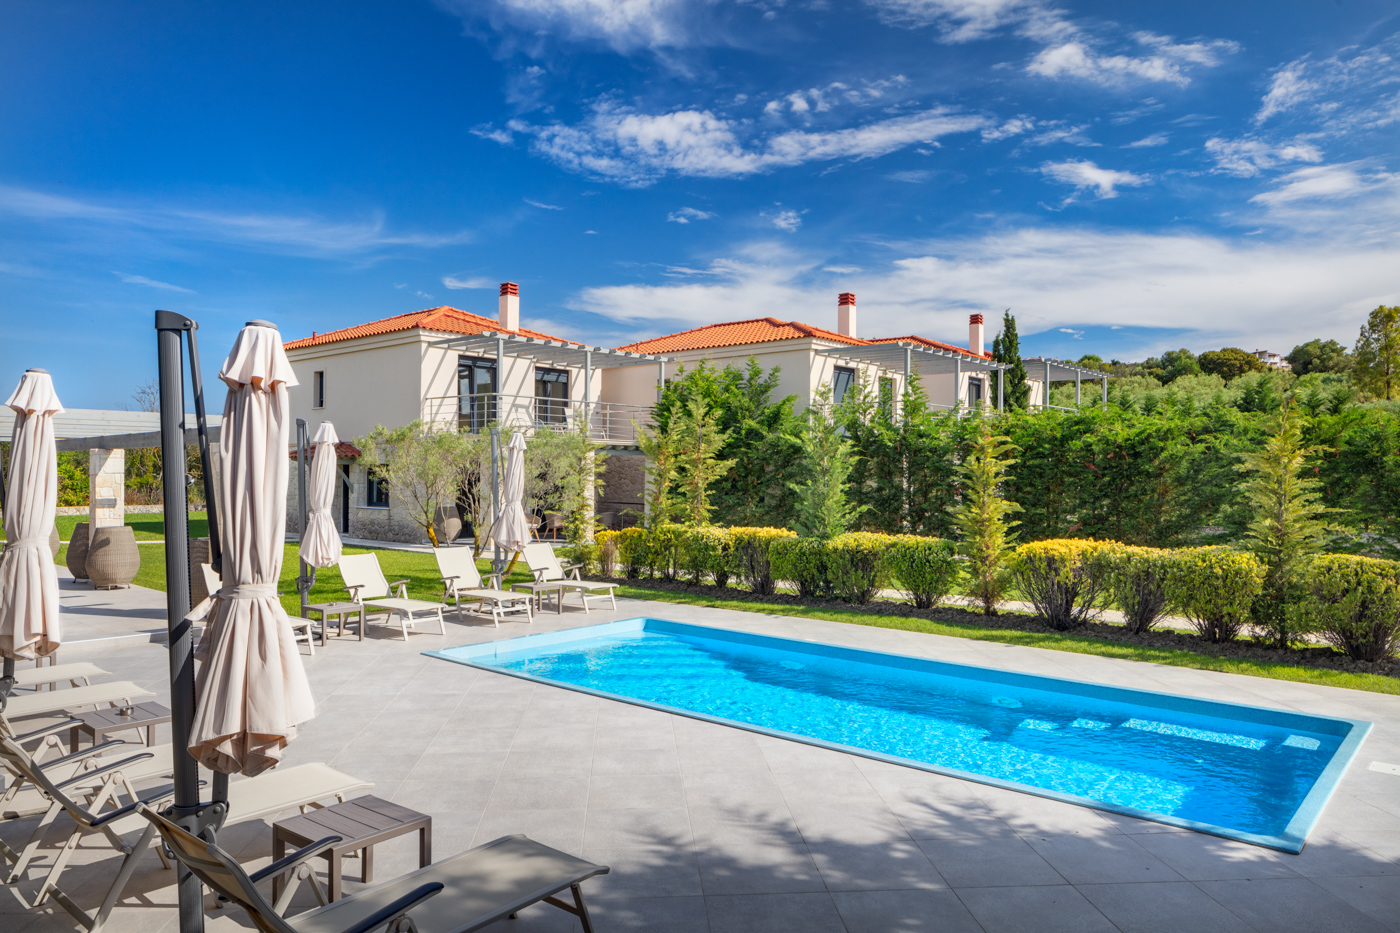 Swimming pool at Chateau Herálec Boutique Hotel & Spa by L'occitane